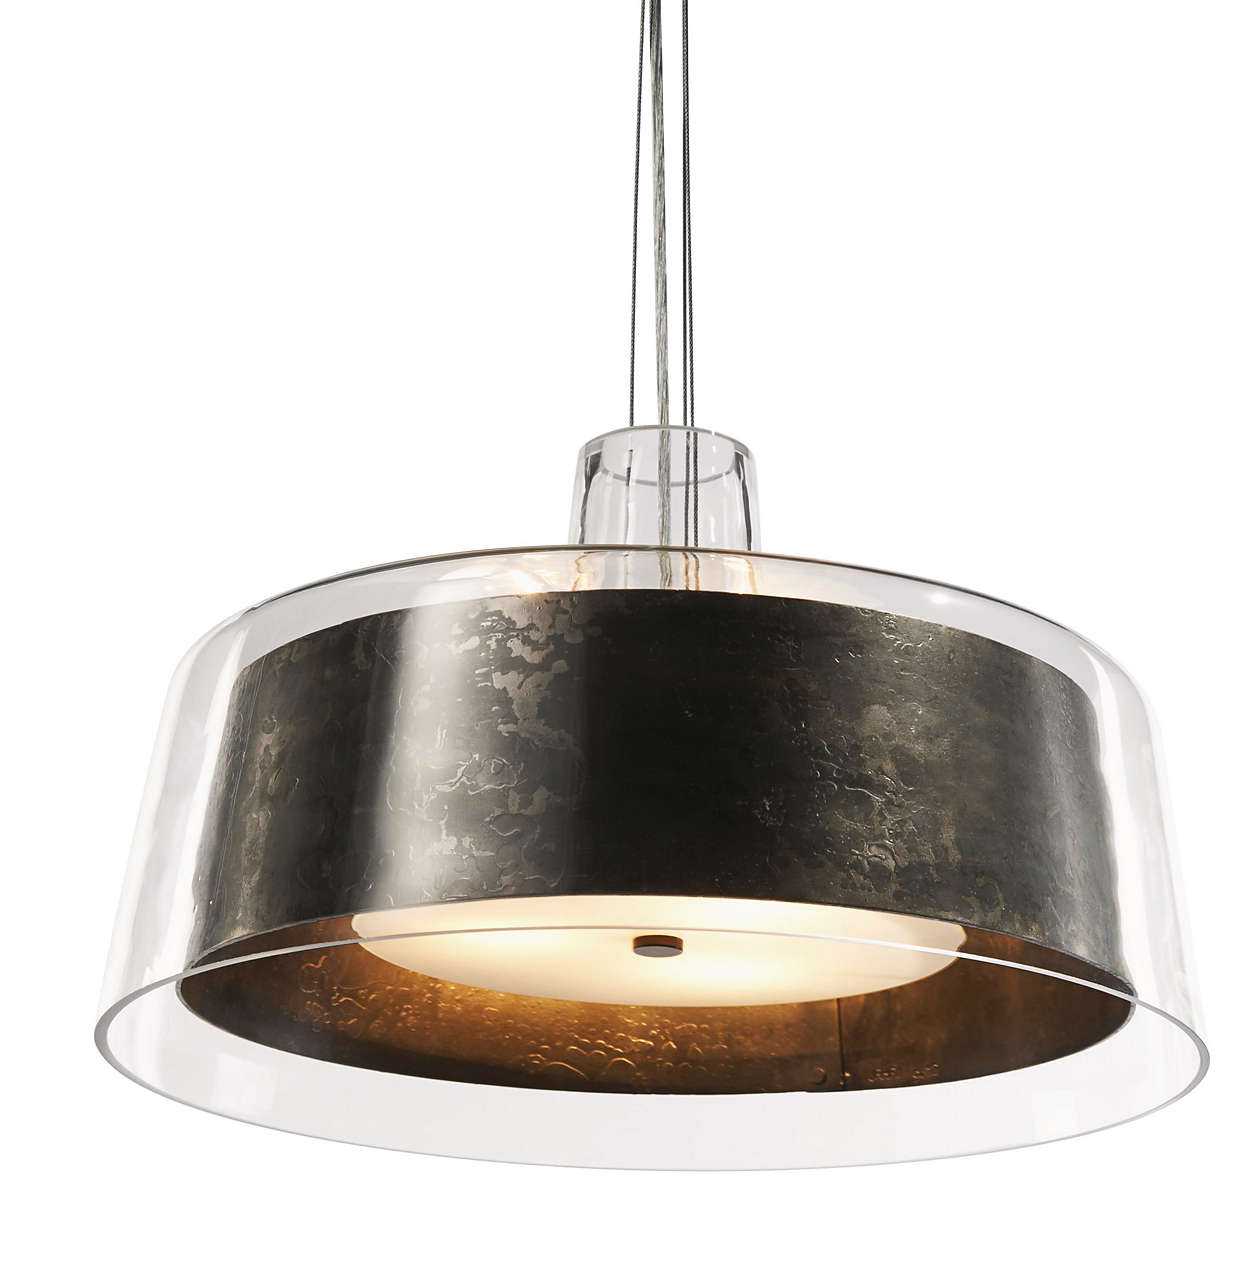 Bari 3-light pendant in Natural Steel finish